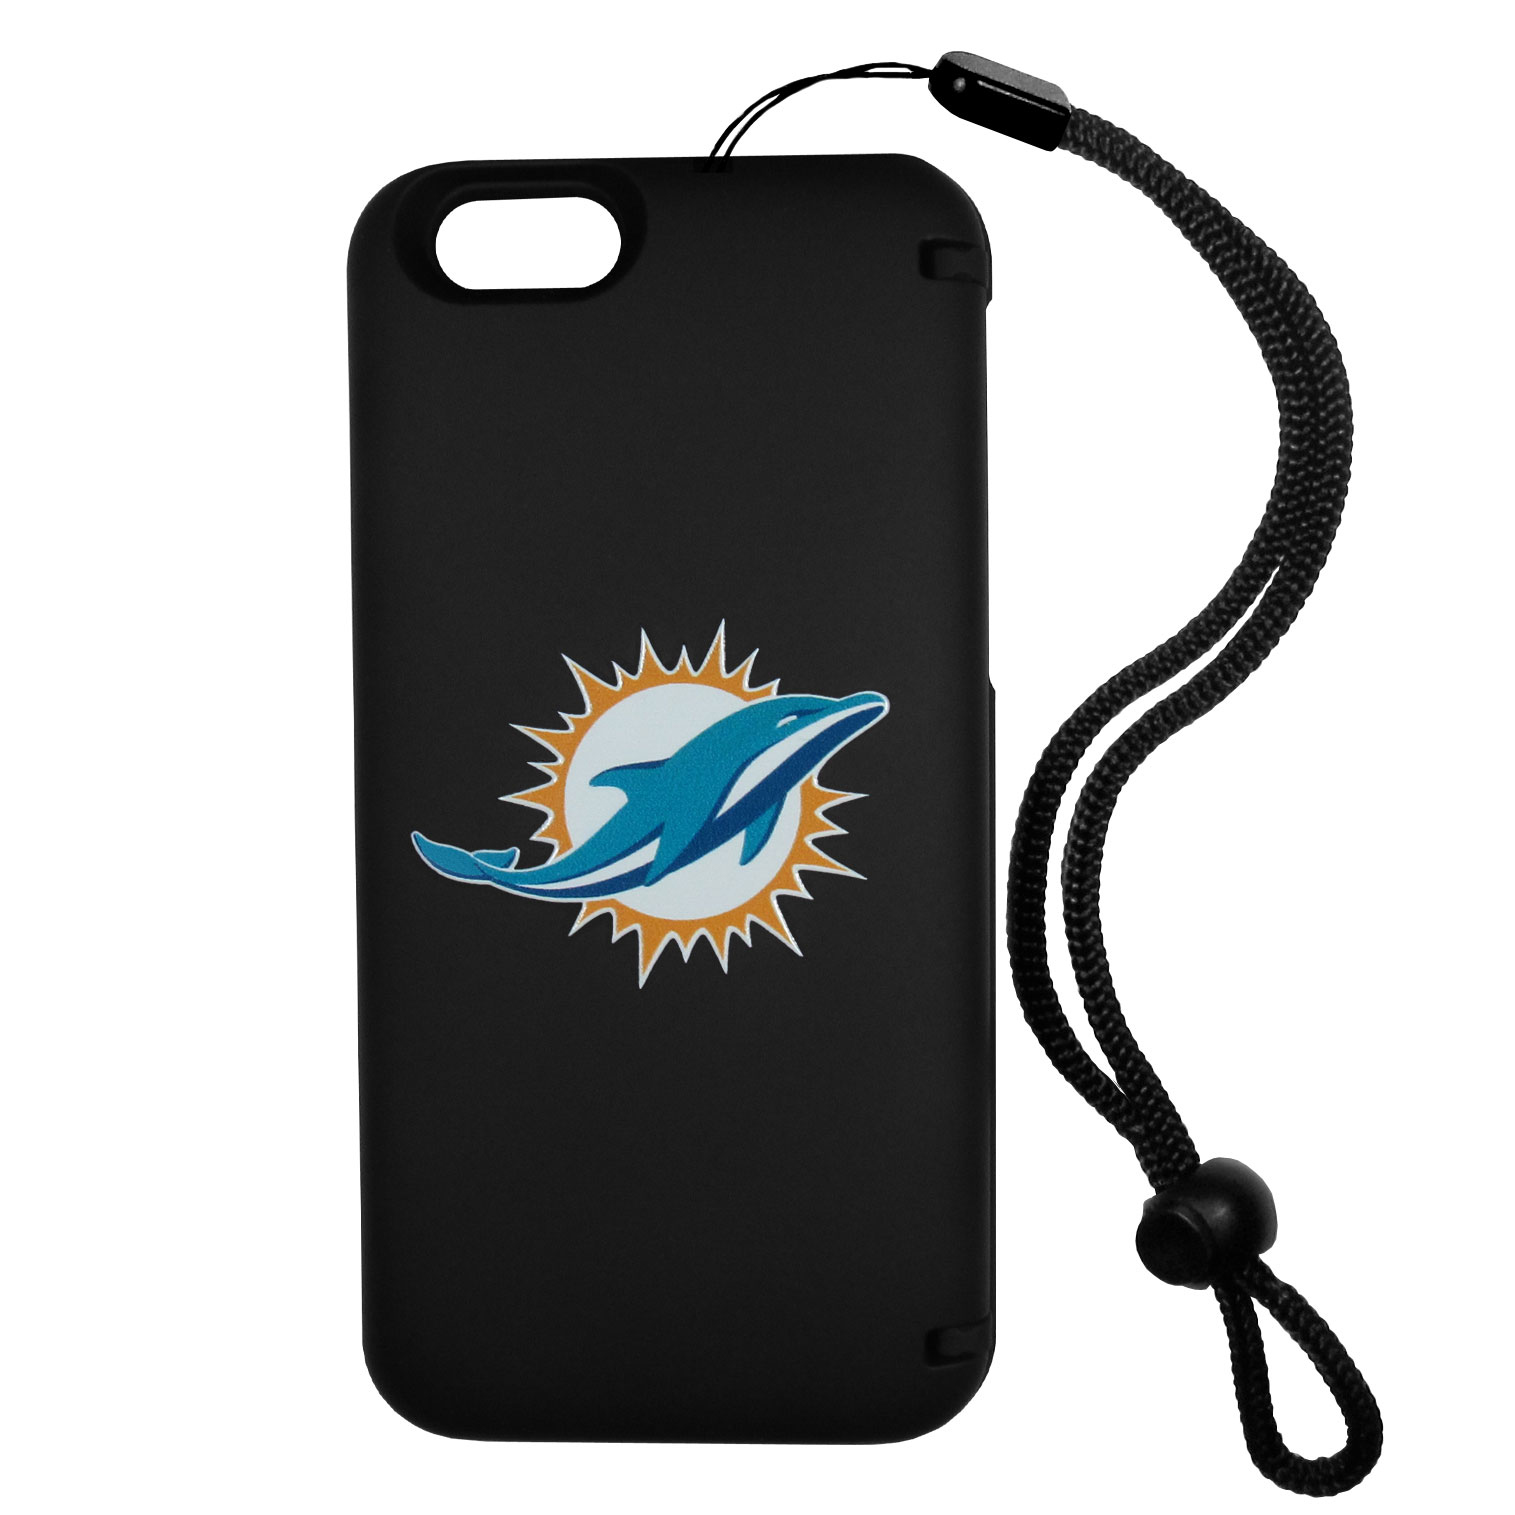 Miami Dolphins iPhone 6 Everything Case - This case really does have everything but the kitchen sink! The hidden compartment lets you keep your cards, money and tickets to the big game safe and secure and has a compact mirror so you can make sure your game face is ready to go. It also comes with a kickstand to make chatting and watching videos a breeze. The wrist strap allows you to travel with ease with your everything case. If that's not enough, it also comes with the Miami Dolphins logo printed in expert detail on the front.